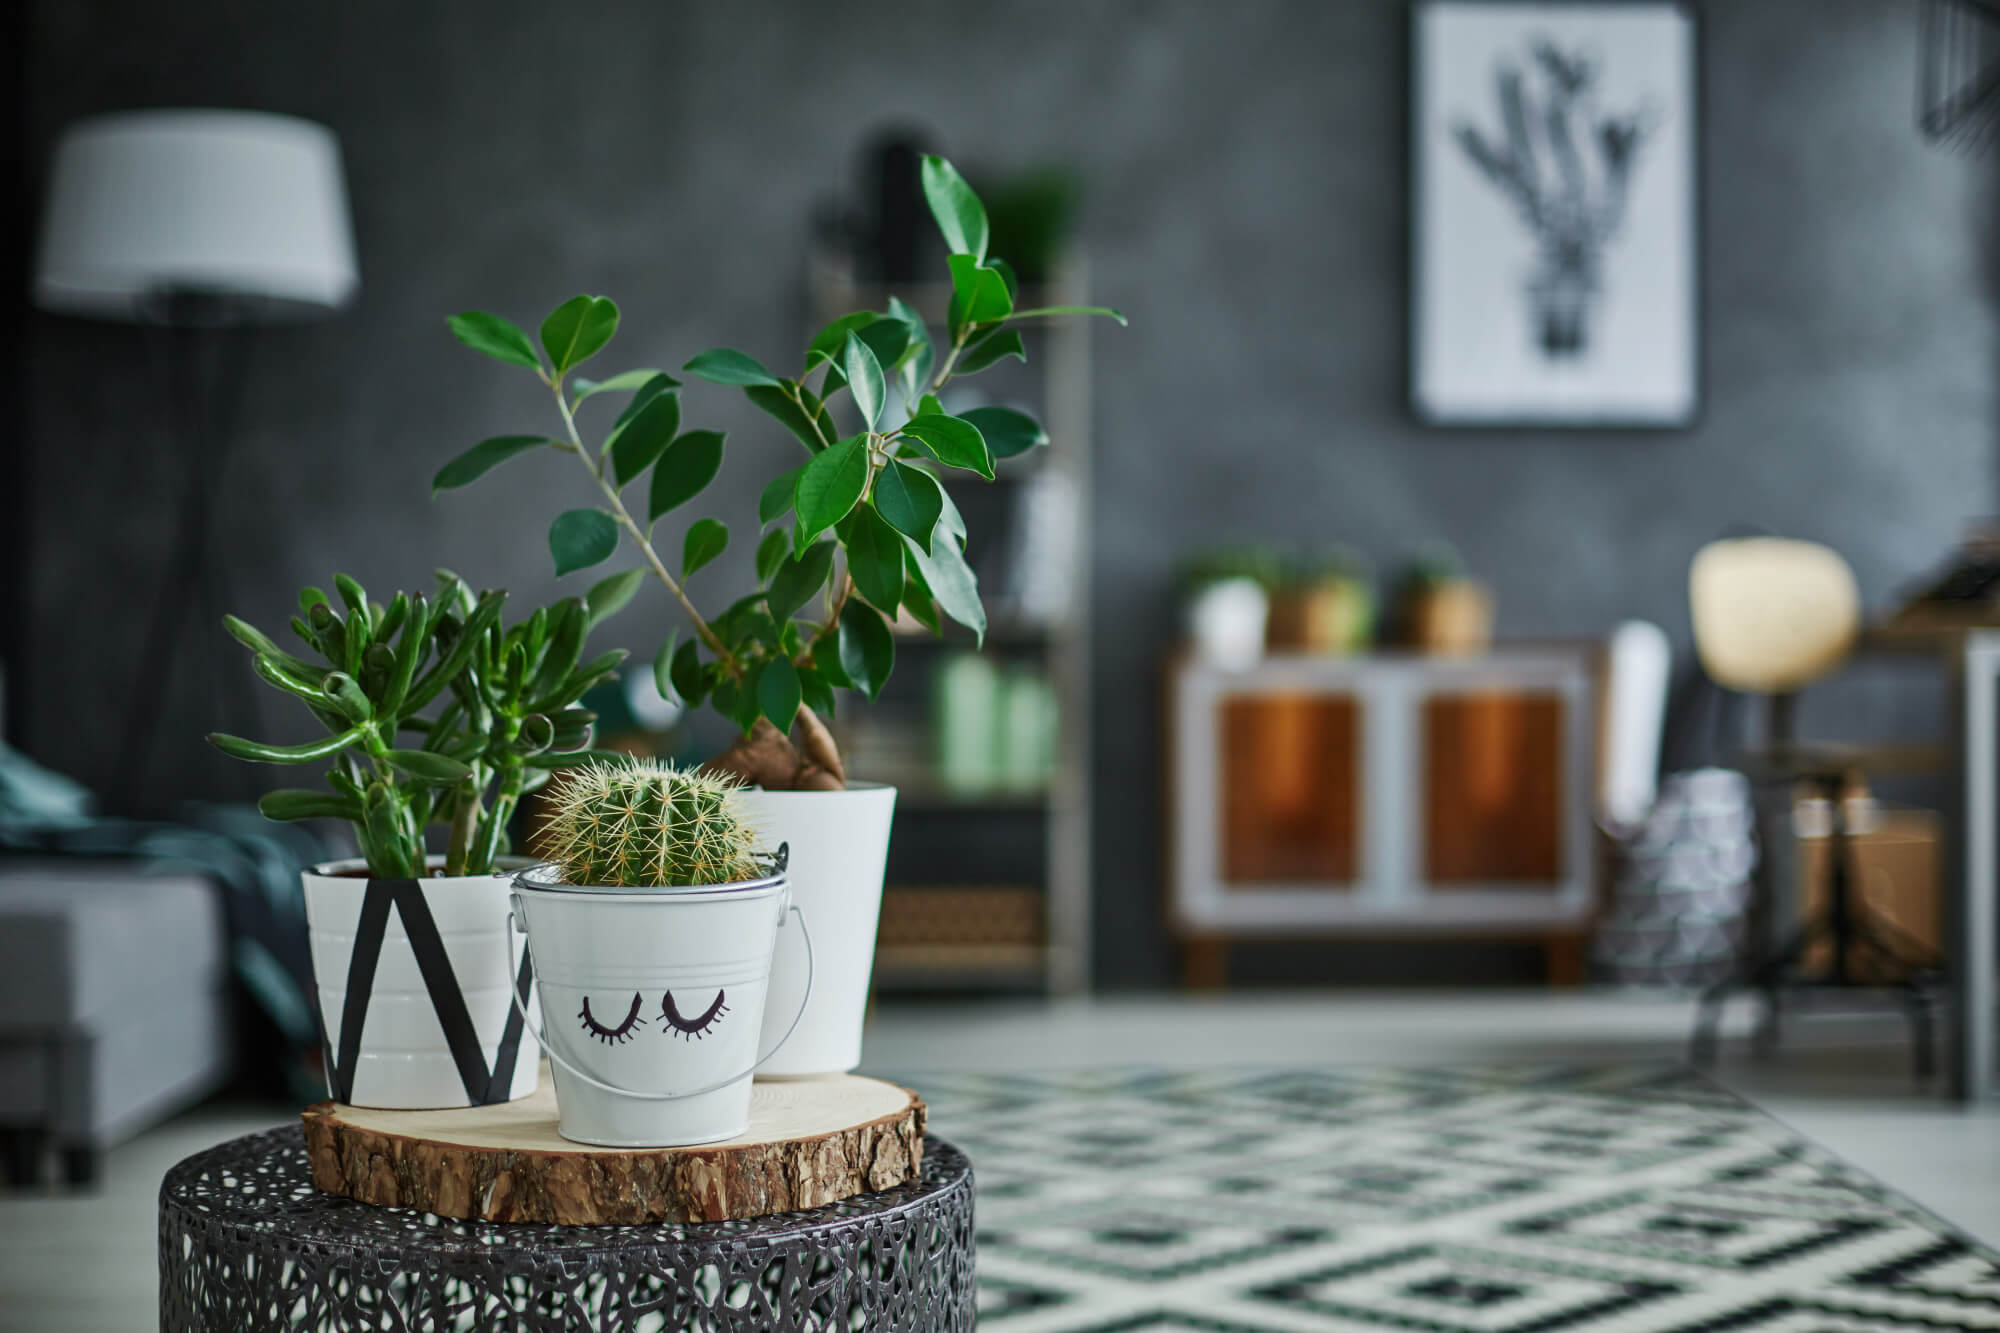 Enhance Your Health Outside and Inside Your Home With Houseplants